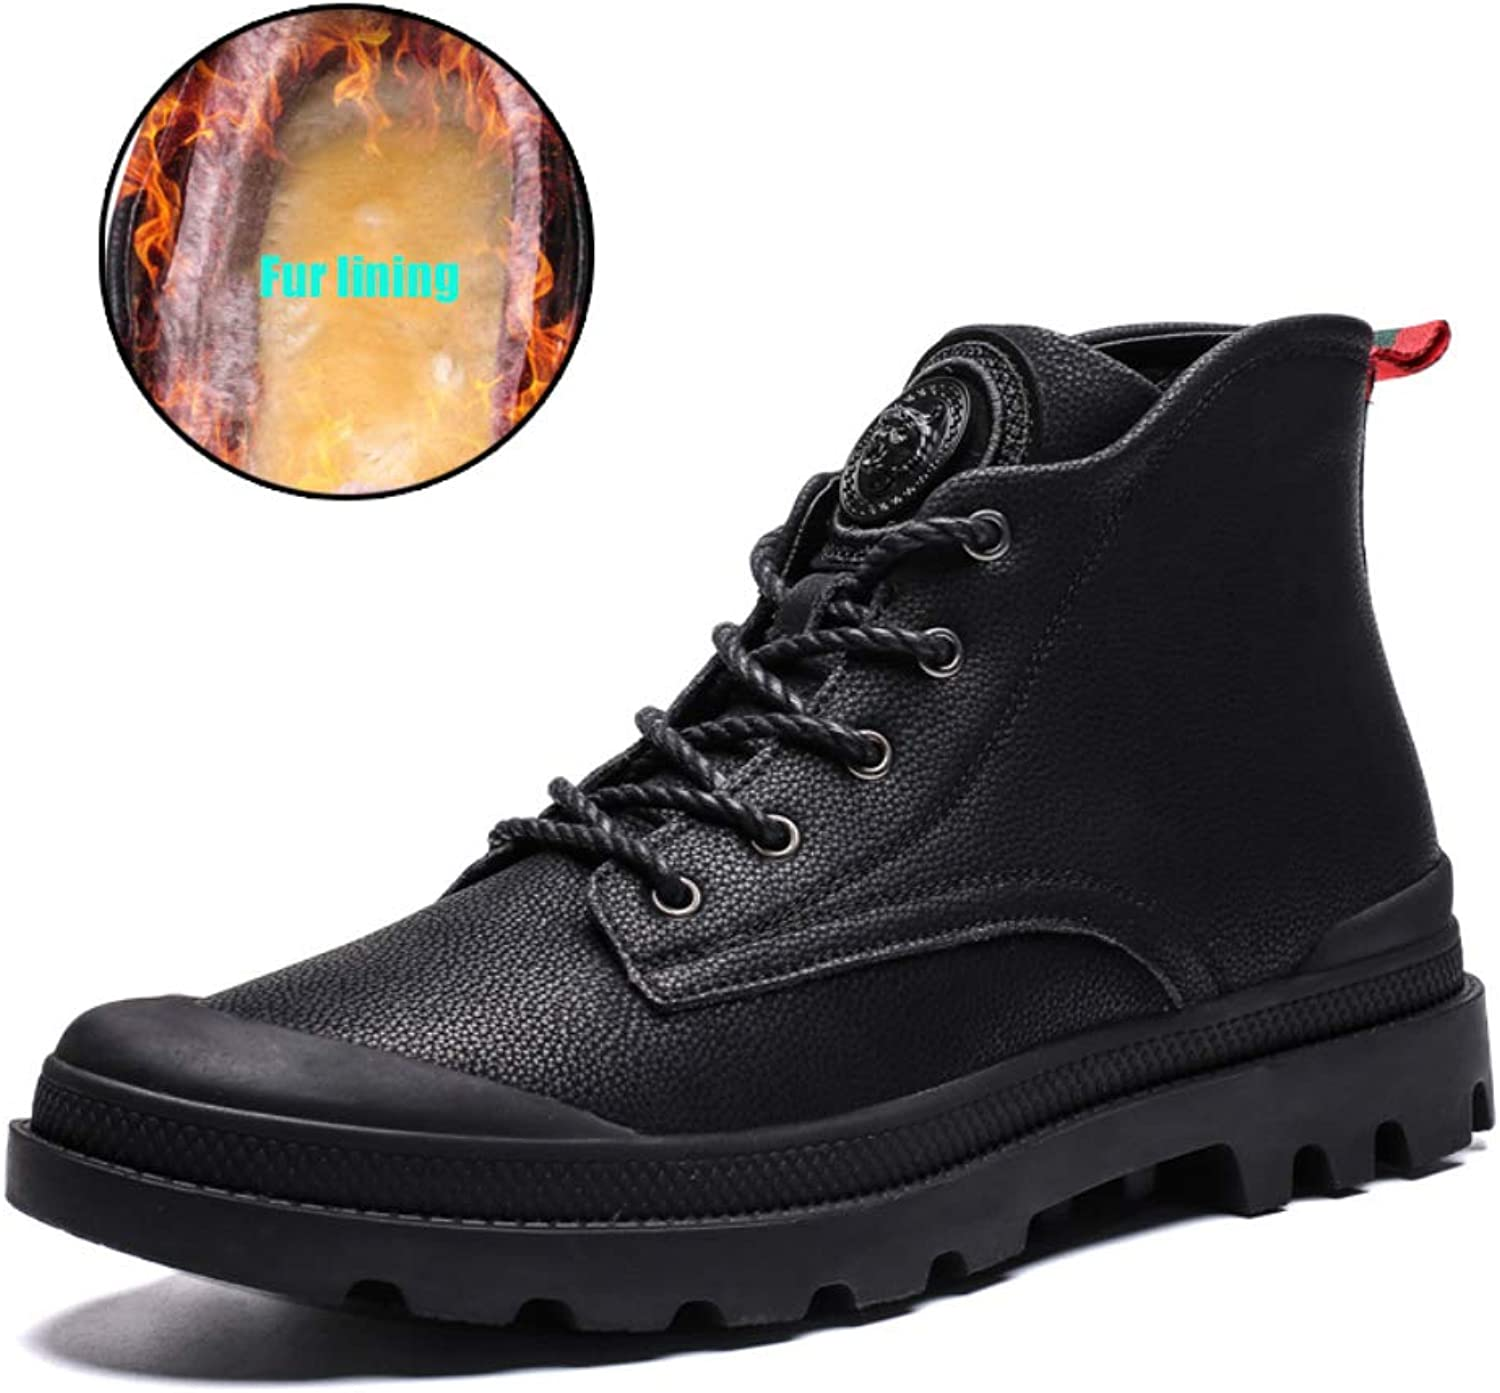 Men's Ankle Boots Fur Lining Non-Slip Safety Boots Winter Warm Work shoes Size 5-9